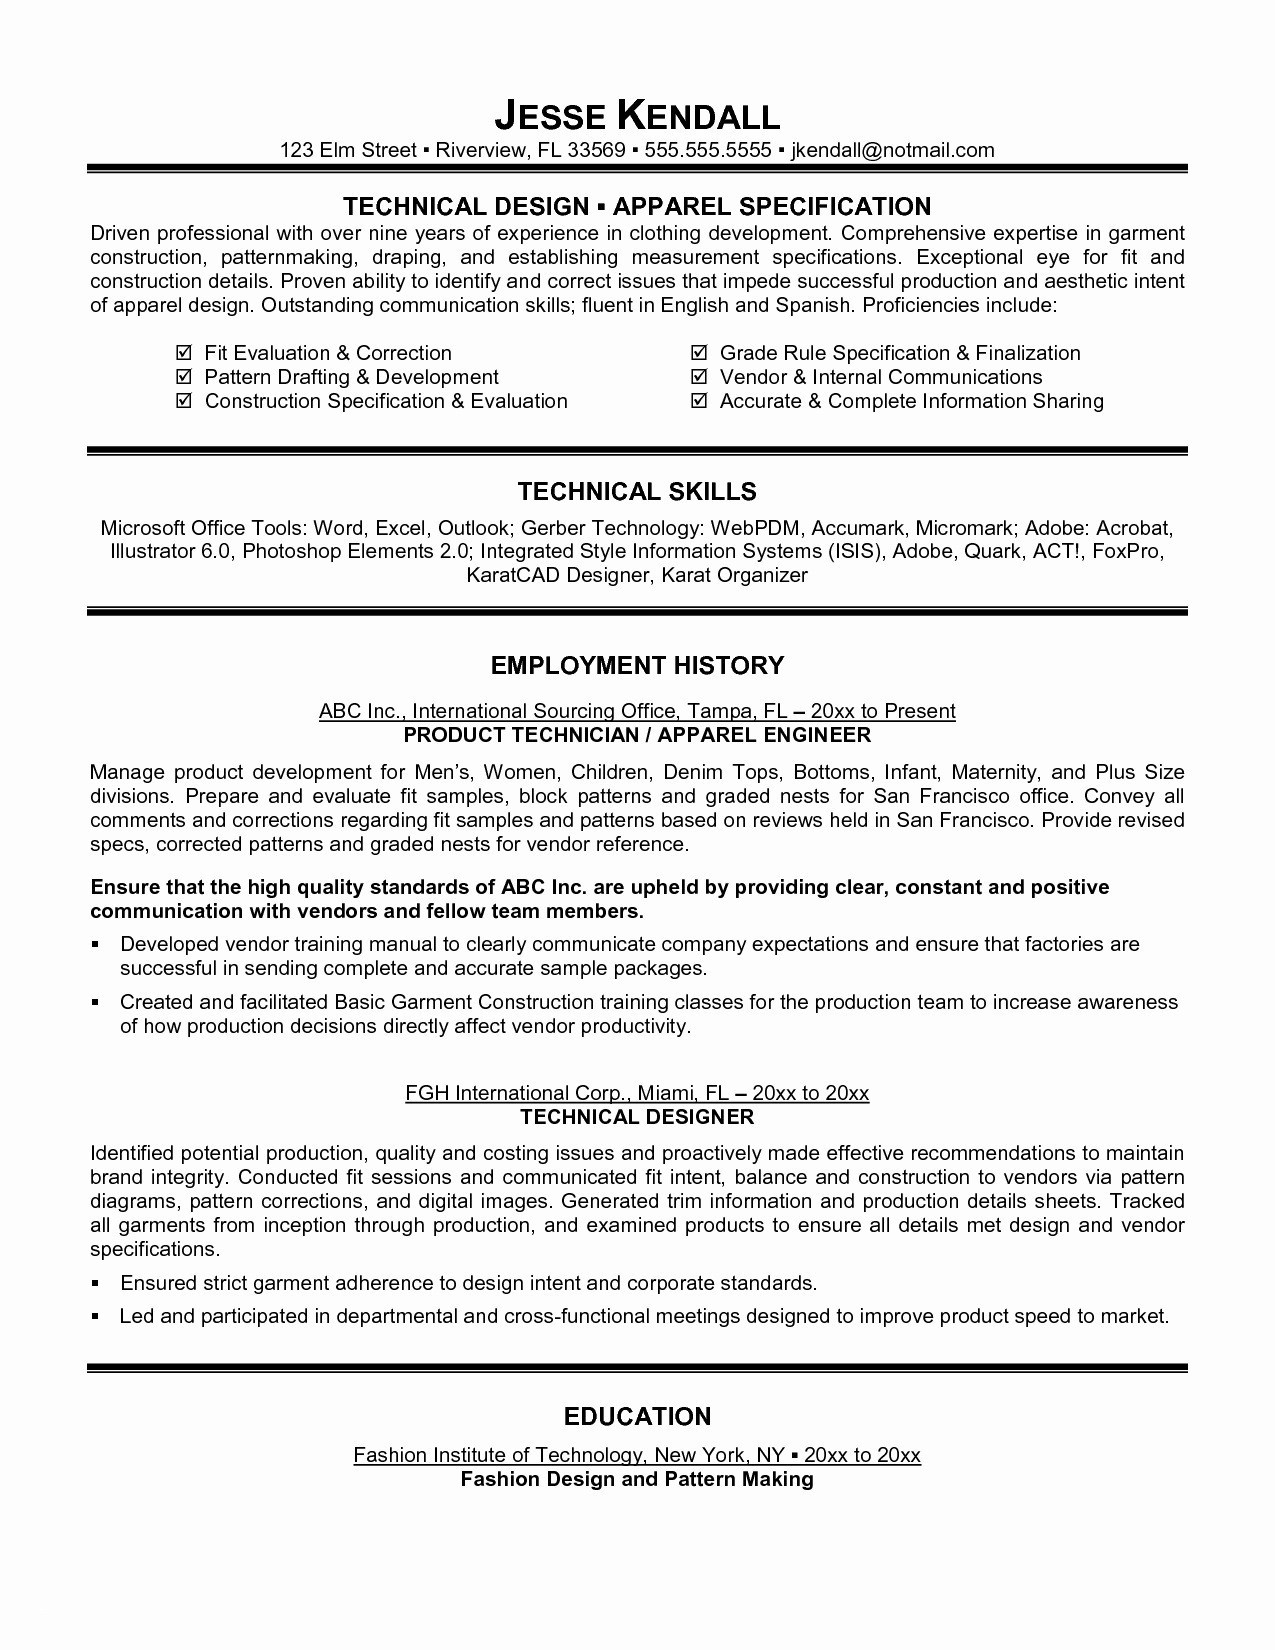 Resume.com Coupon Code - Resume Coupon Code Literarywondrous Simple Resume format